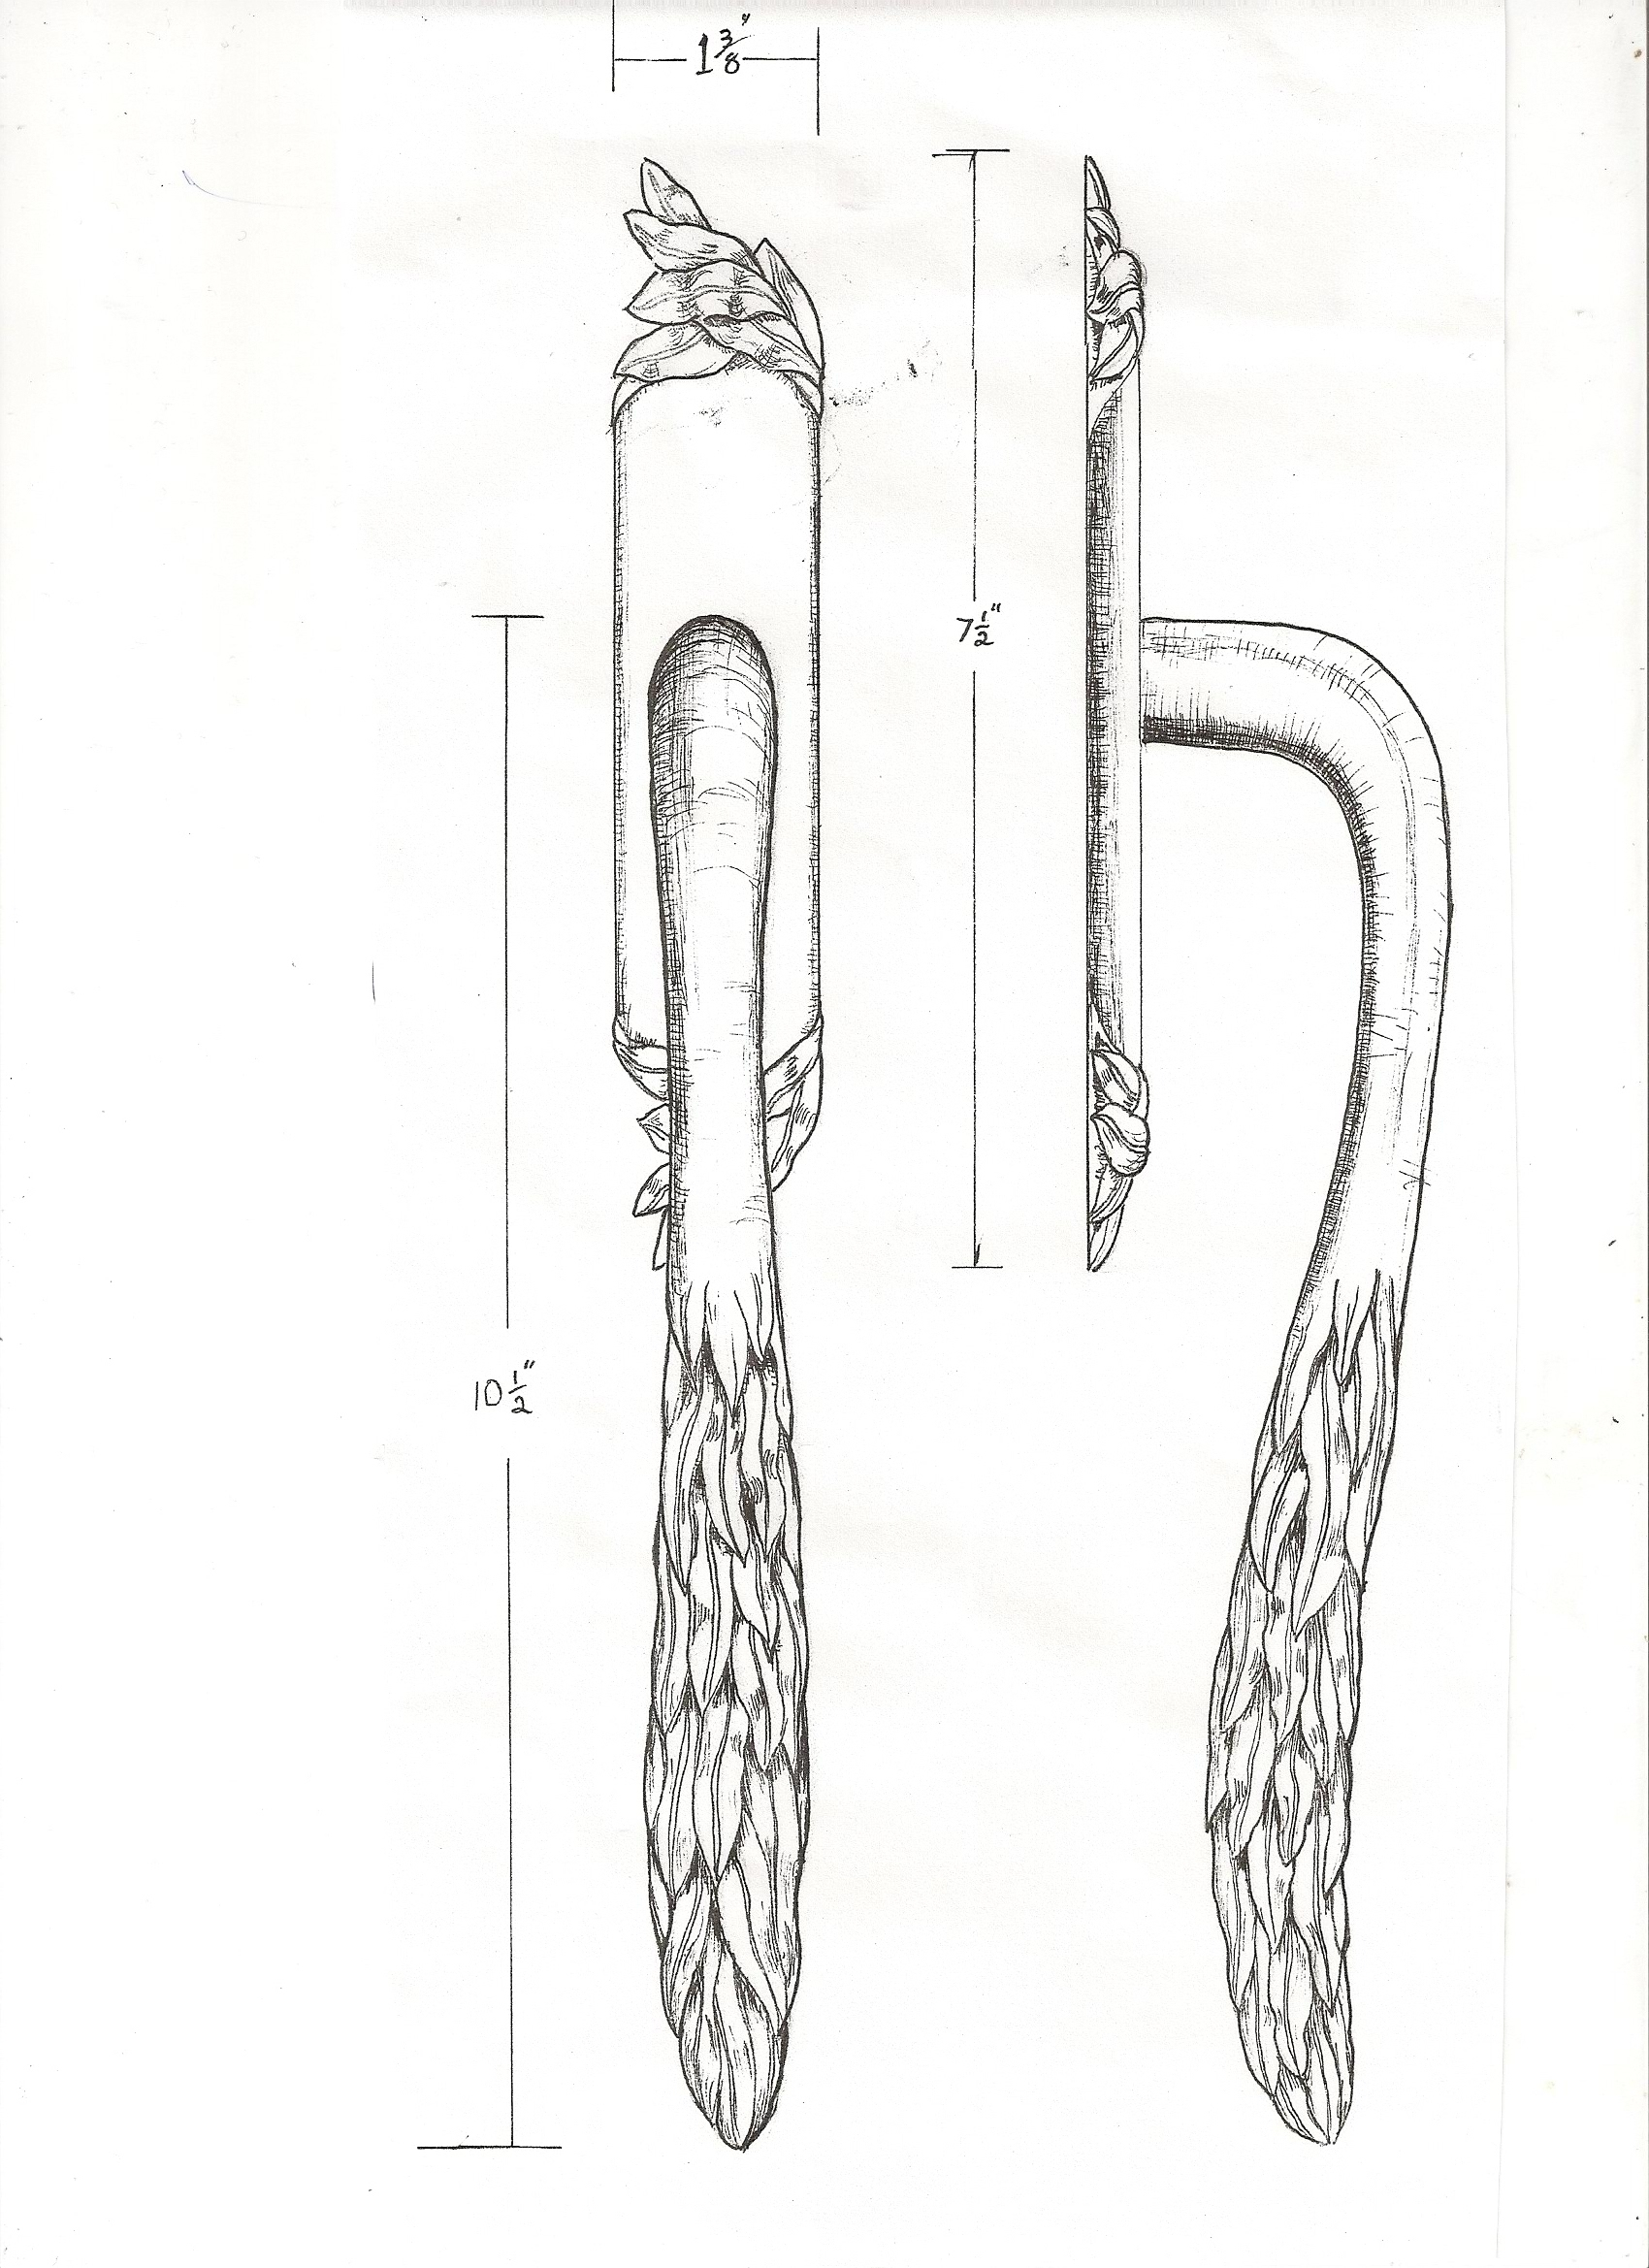 Sketch for entry door handle for Willow collection of hardware by Martin Pierce Hardware Los Angeles CA 90016